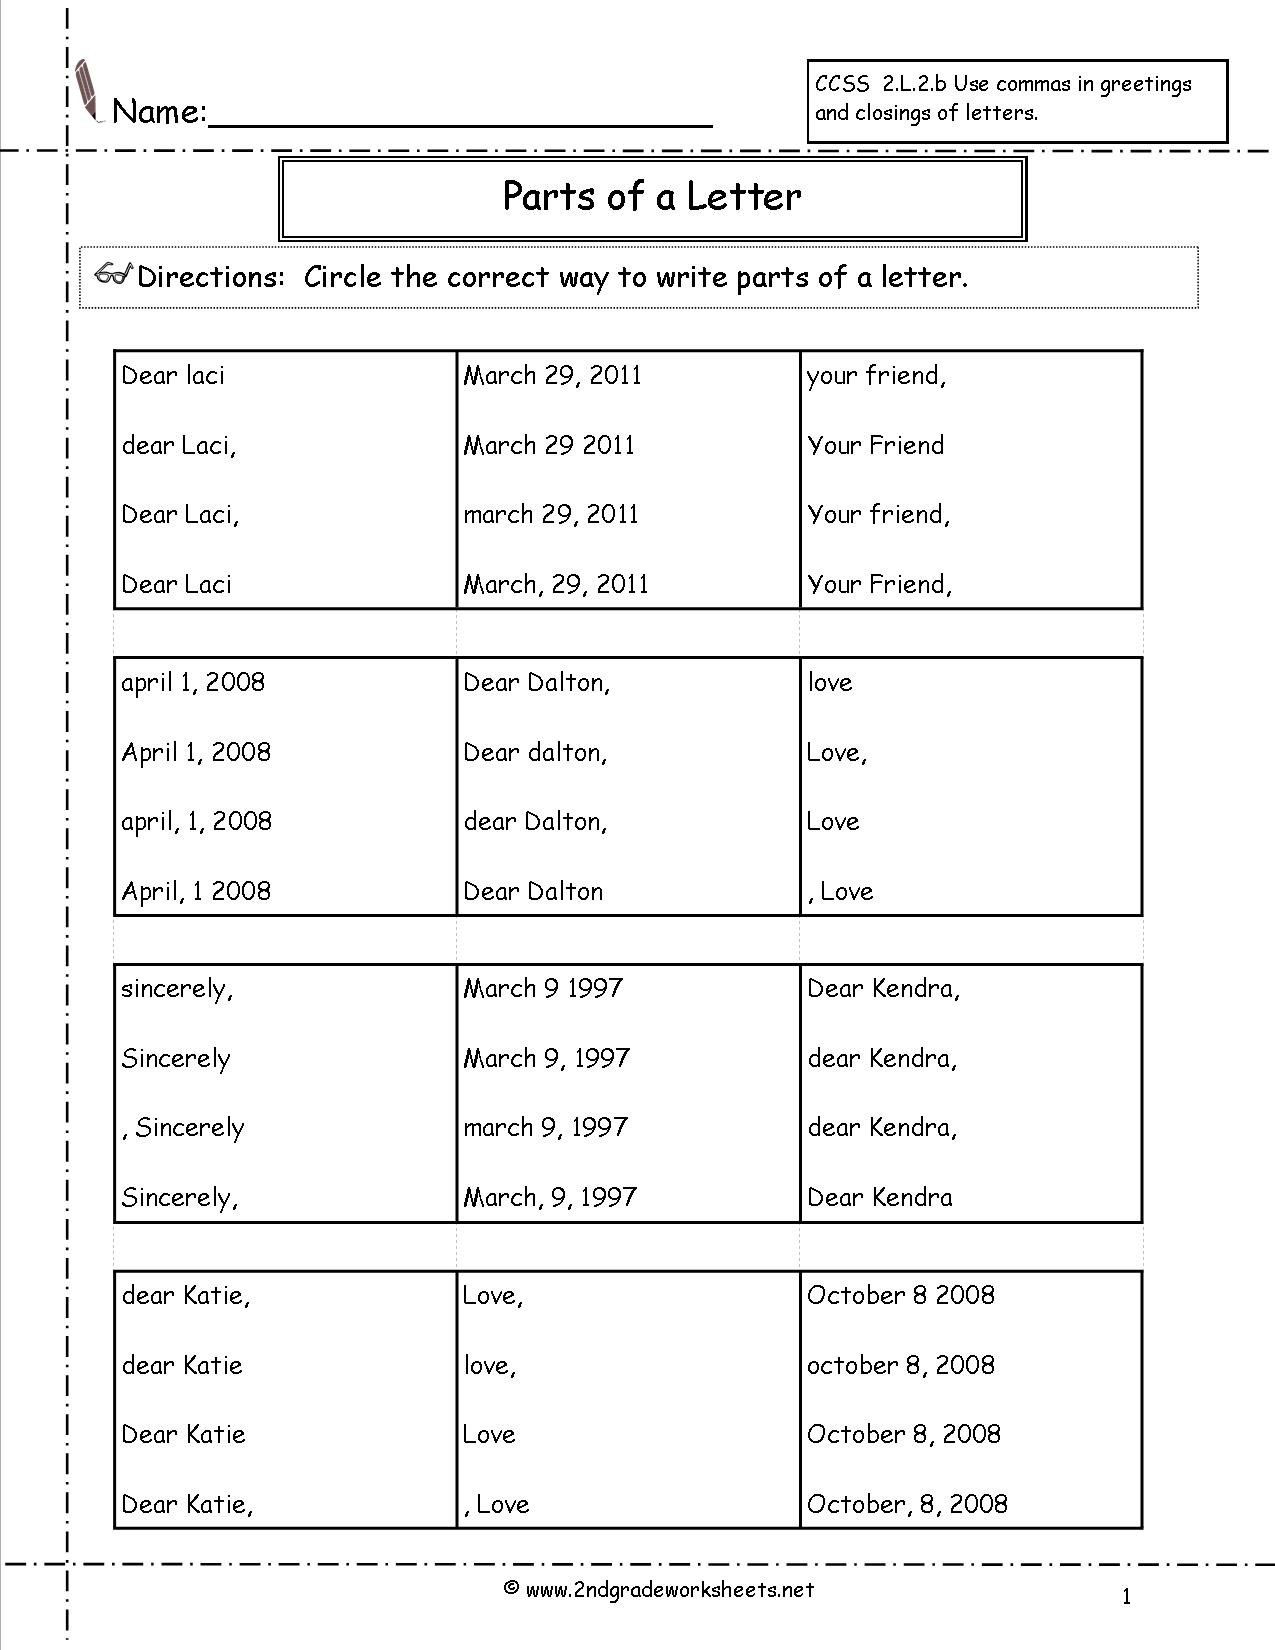 Letters And Parts Of A Letter Worksheet pertaining to Grade 2 Alphabet Worksheets